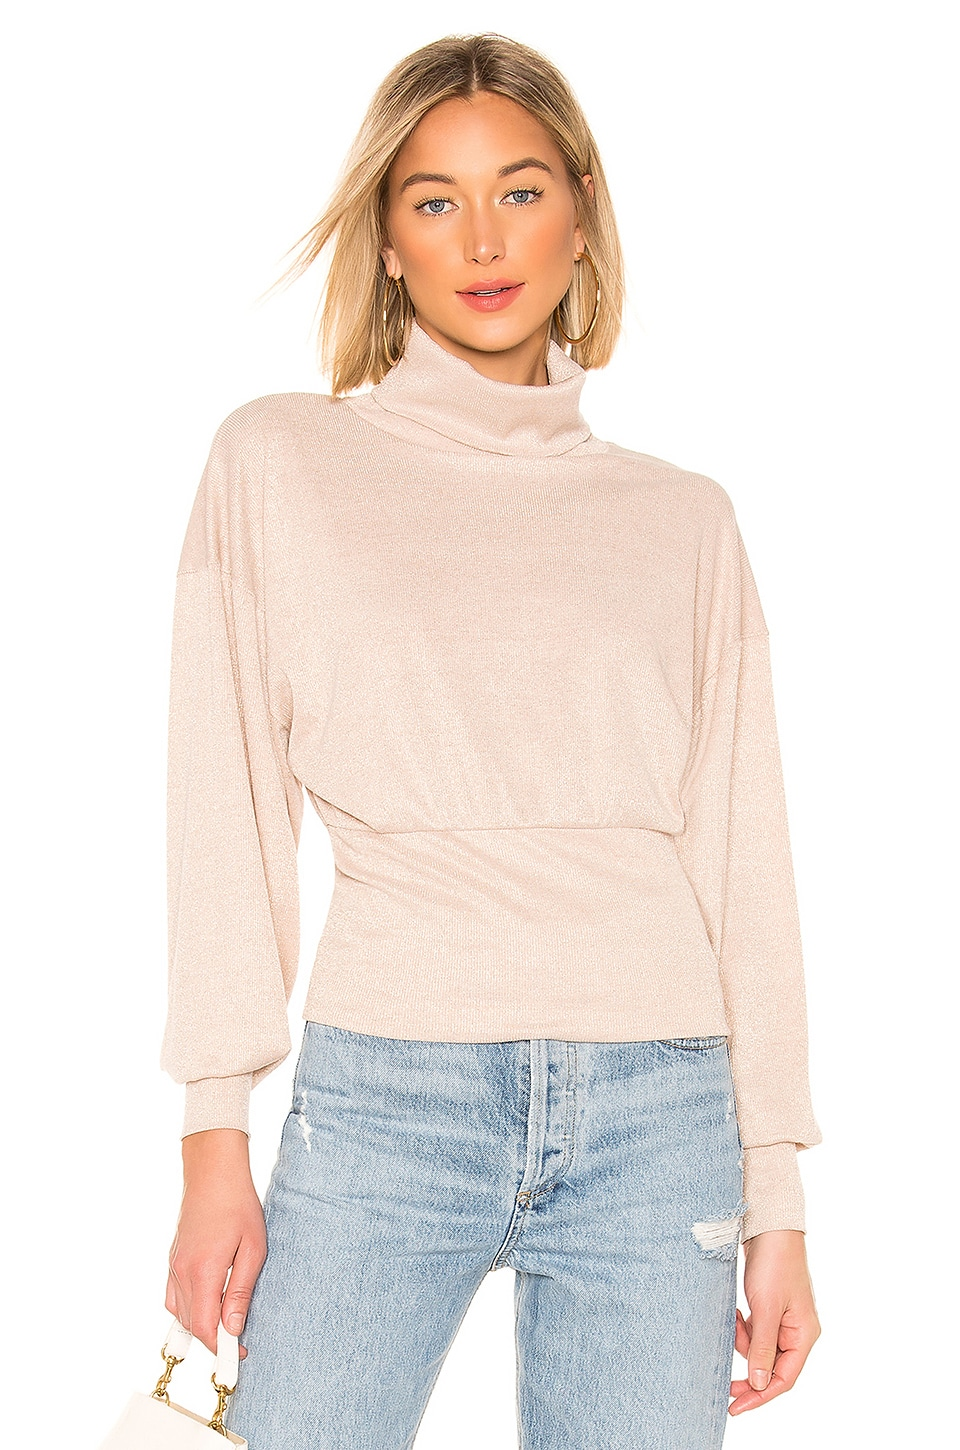 Free People Glam Turtleneck Sweater in Ivory